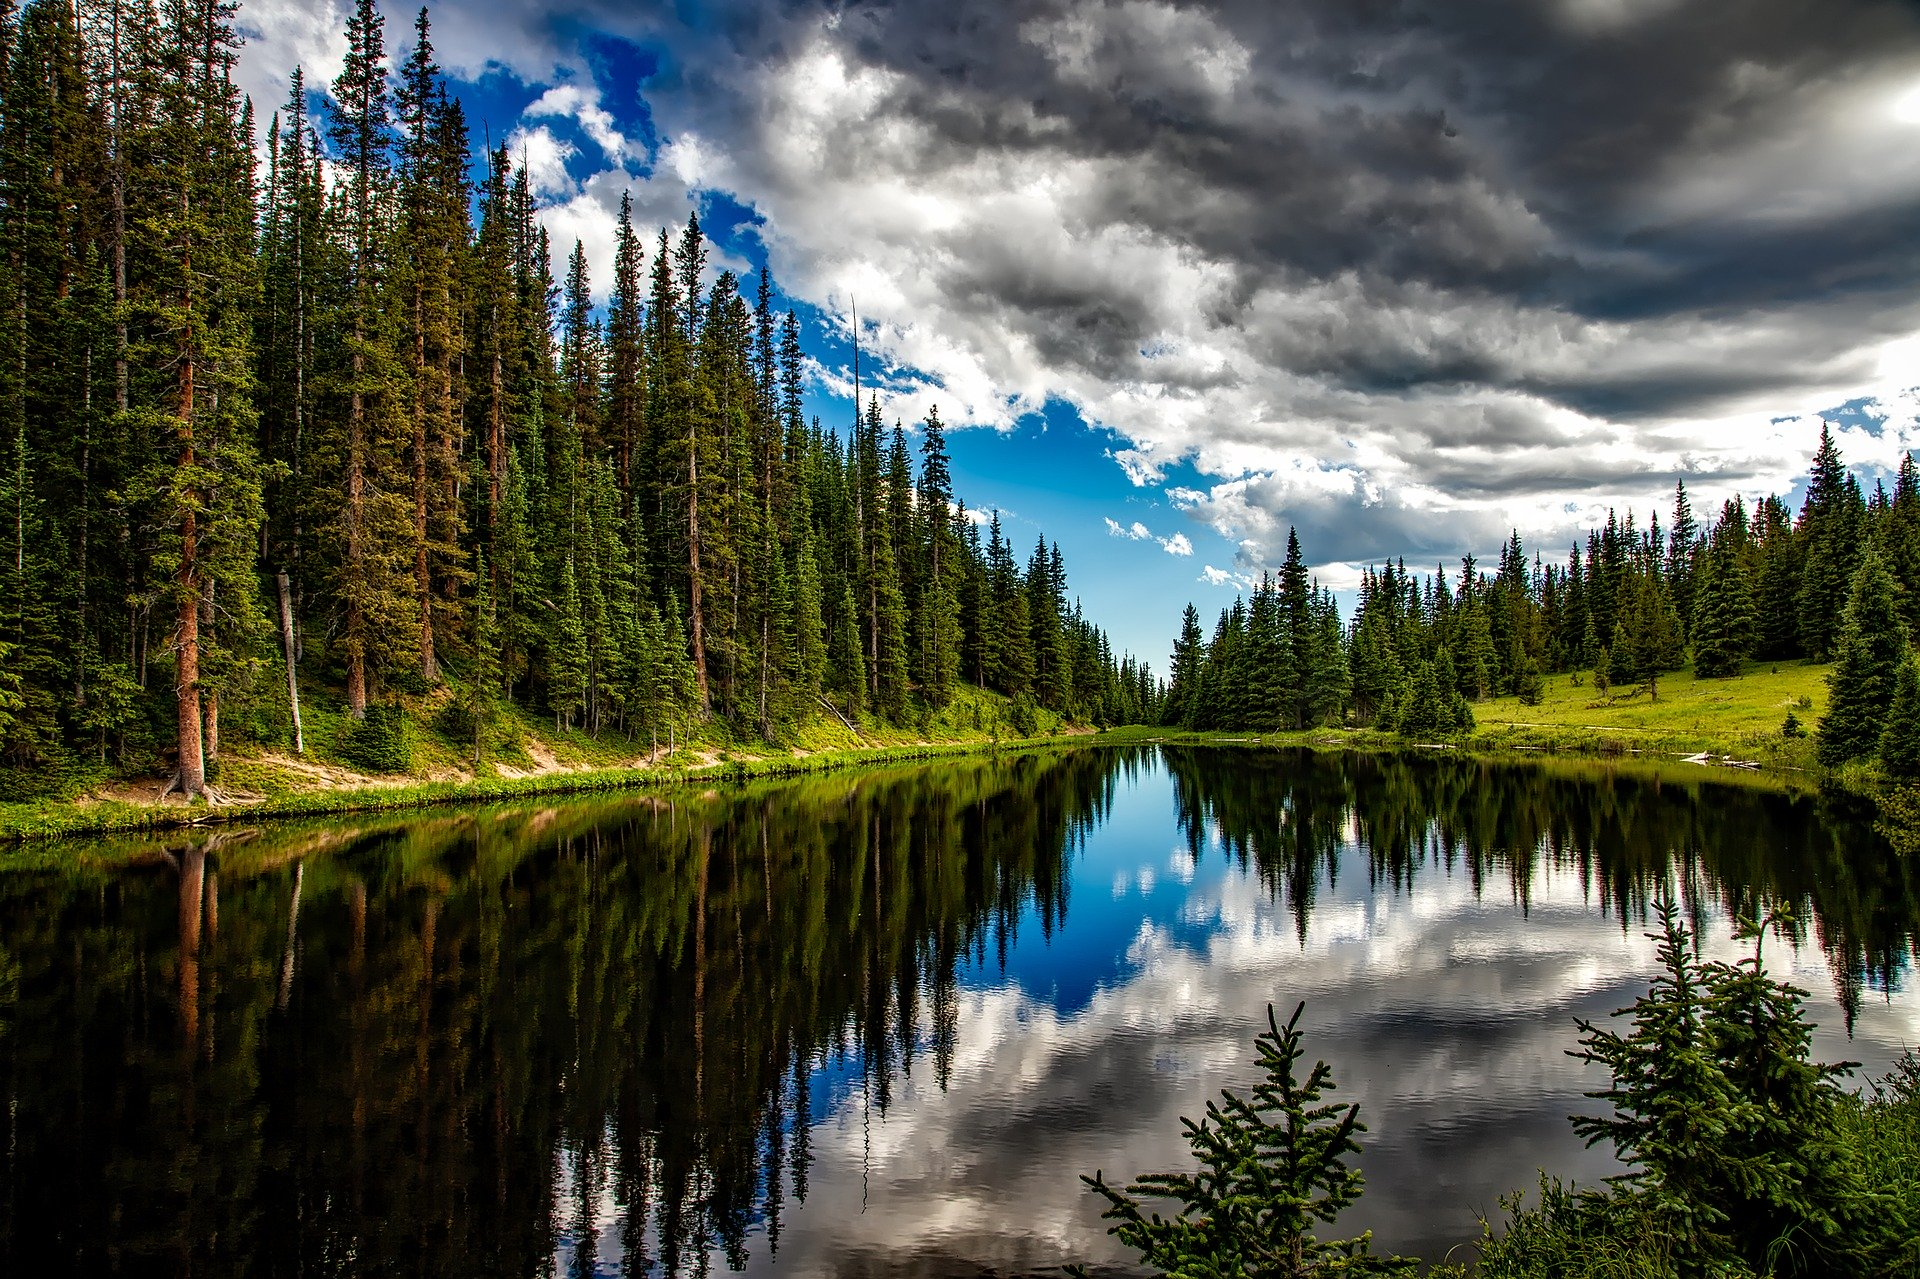 Scenic lake with tall pines